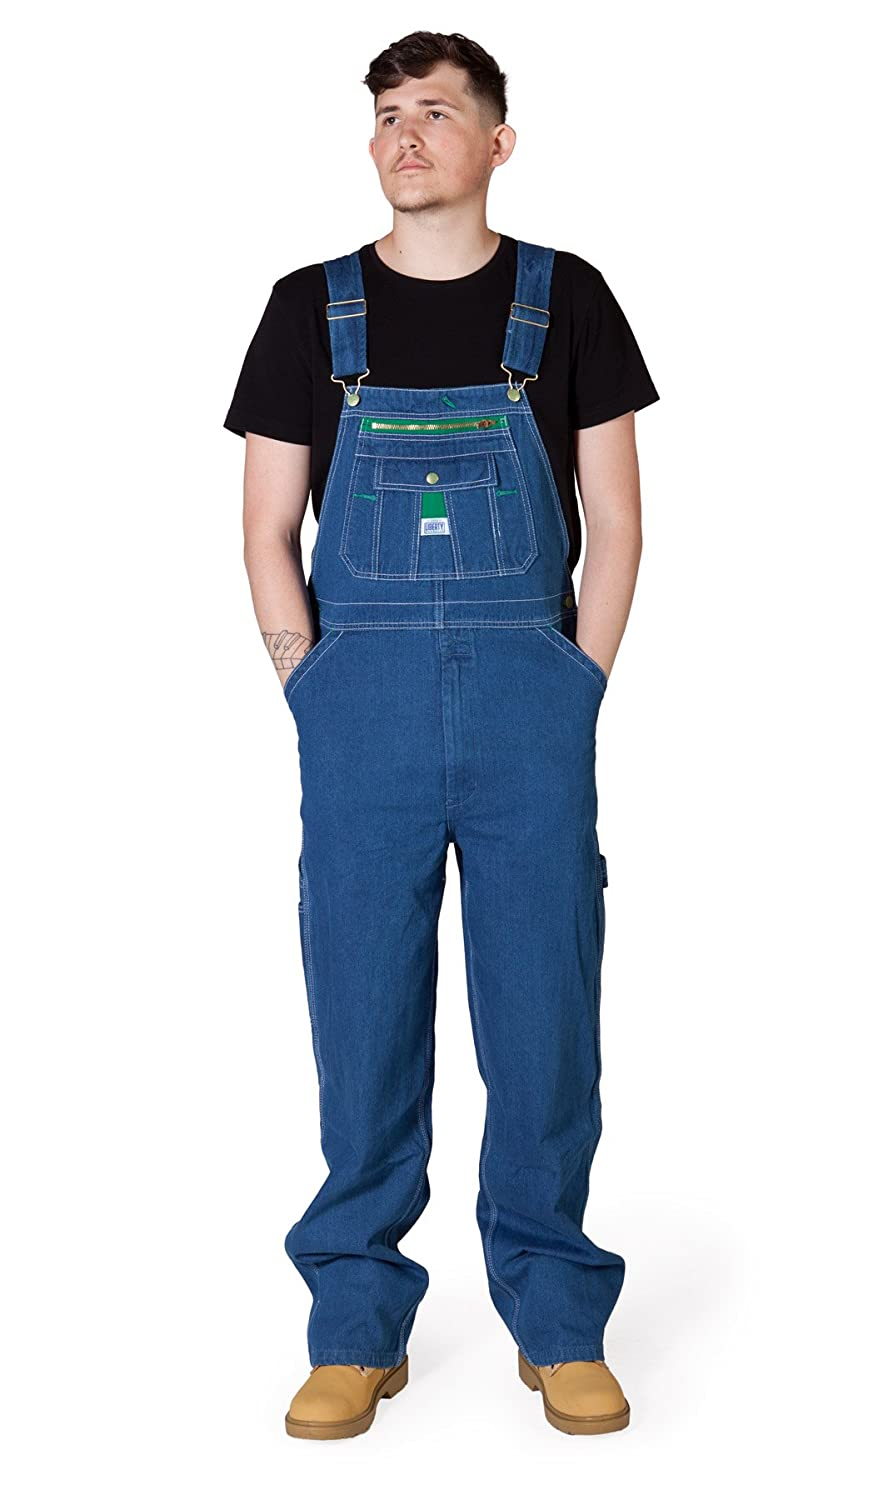 Liberty Stonewashed Denim Work Dungarees Mens Dungarees Bib Overall Big and Tall LIBSW